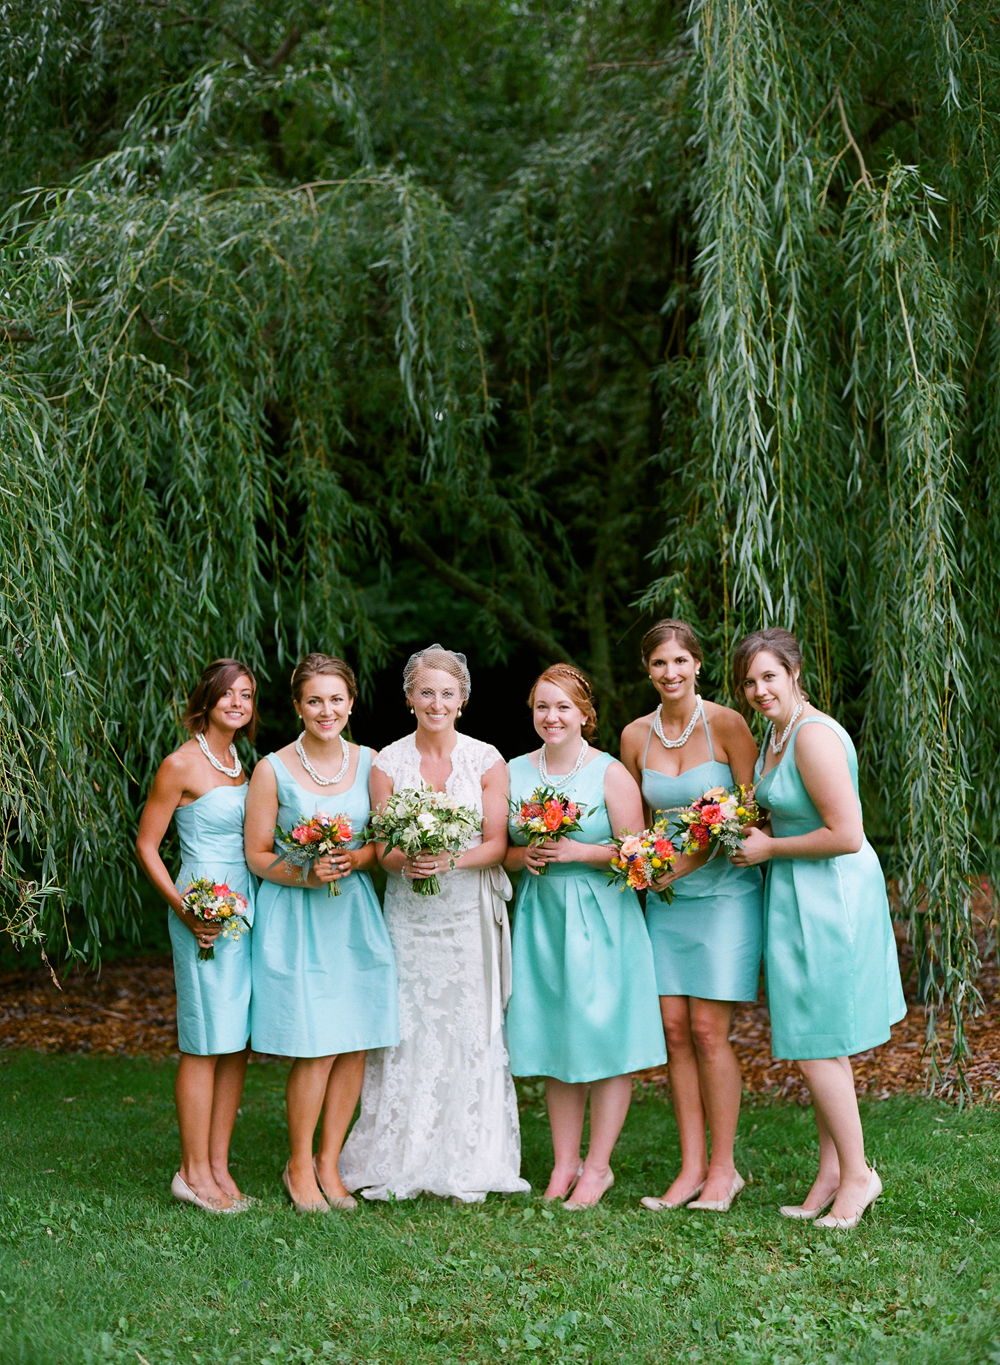 munson-bridge-winery-wedding-043